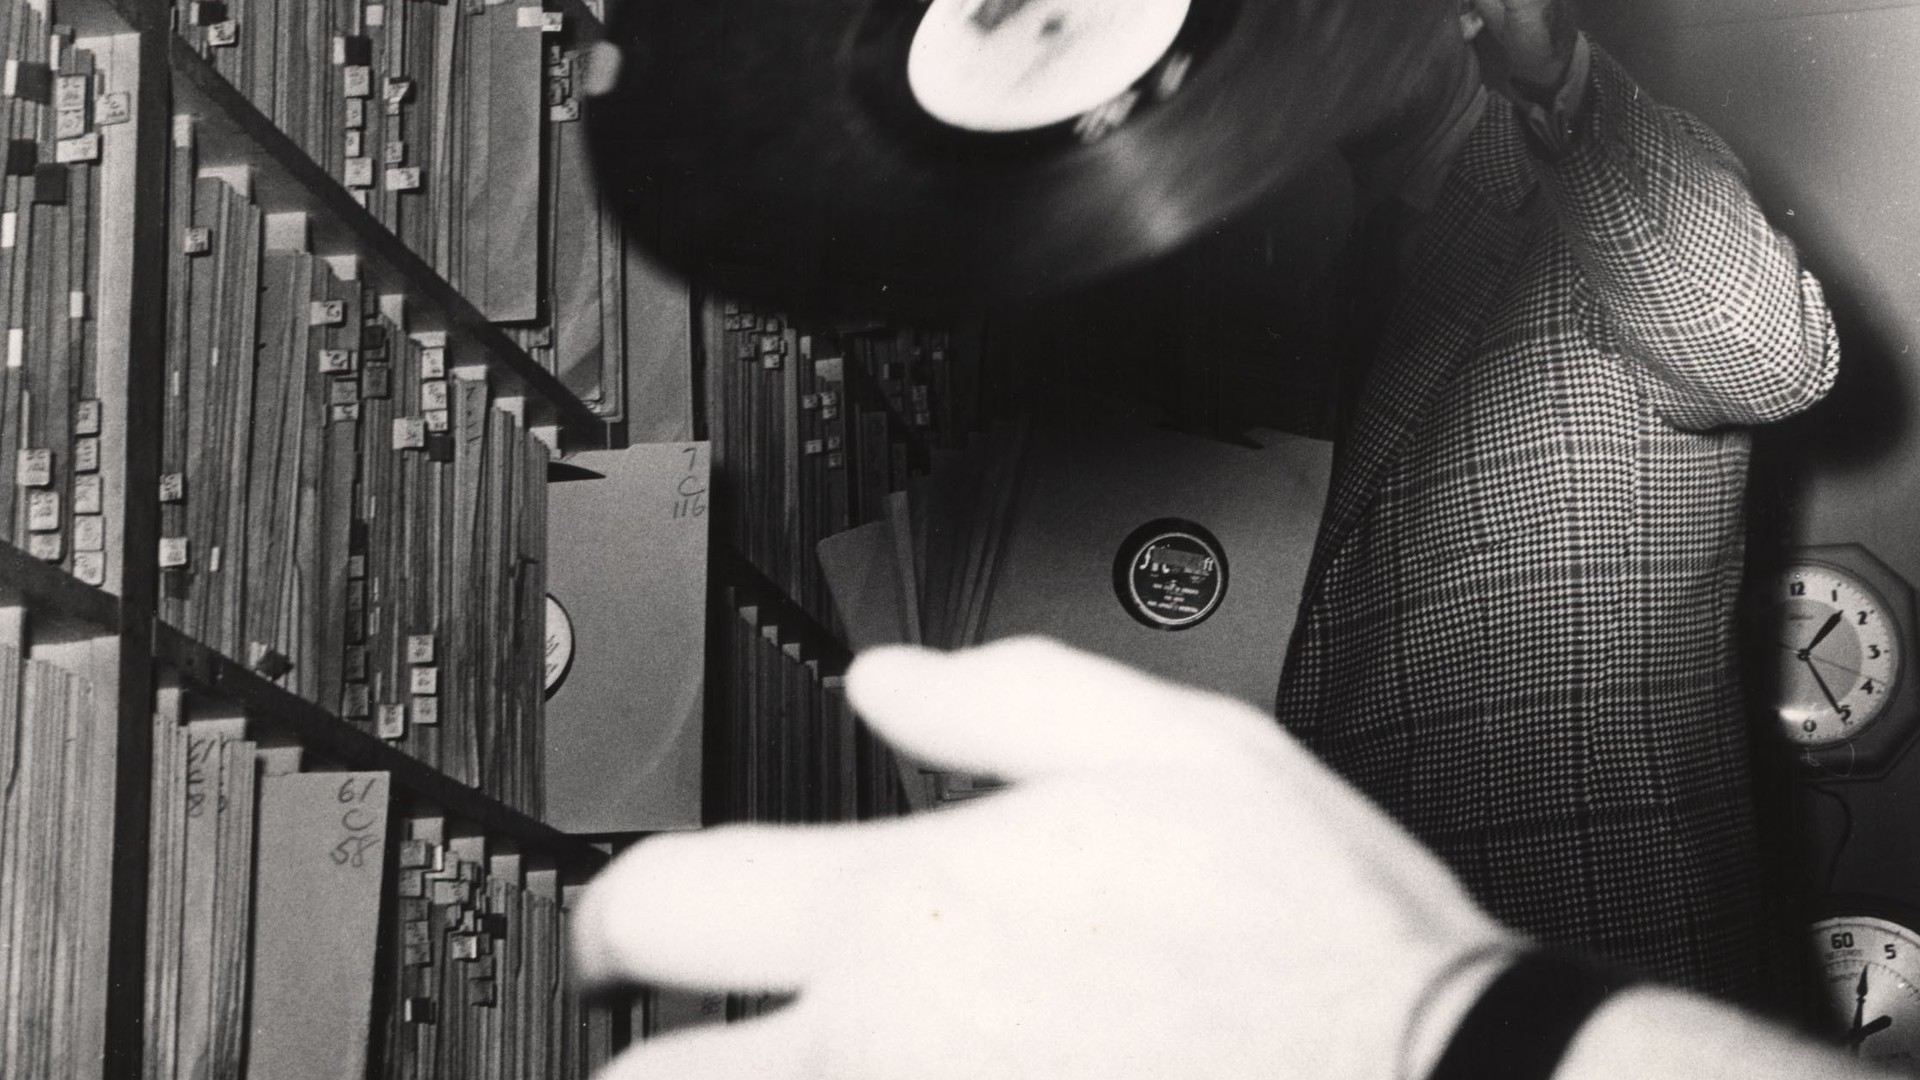 A black-and-white photo of a man in a plaid suit holding up a record, his face obscured